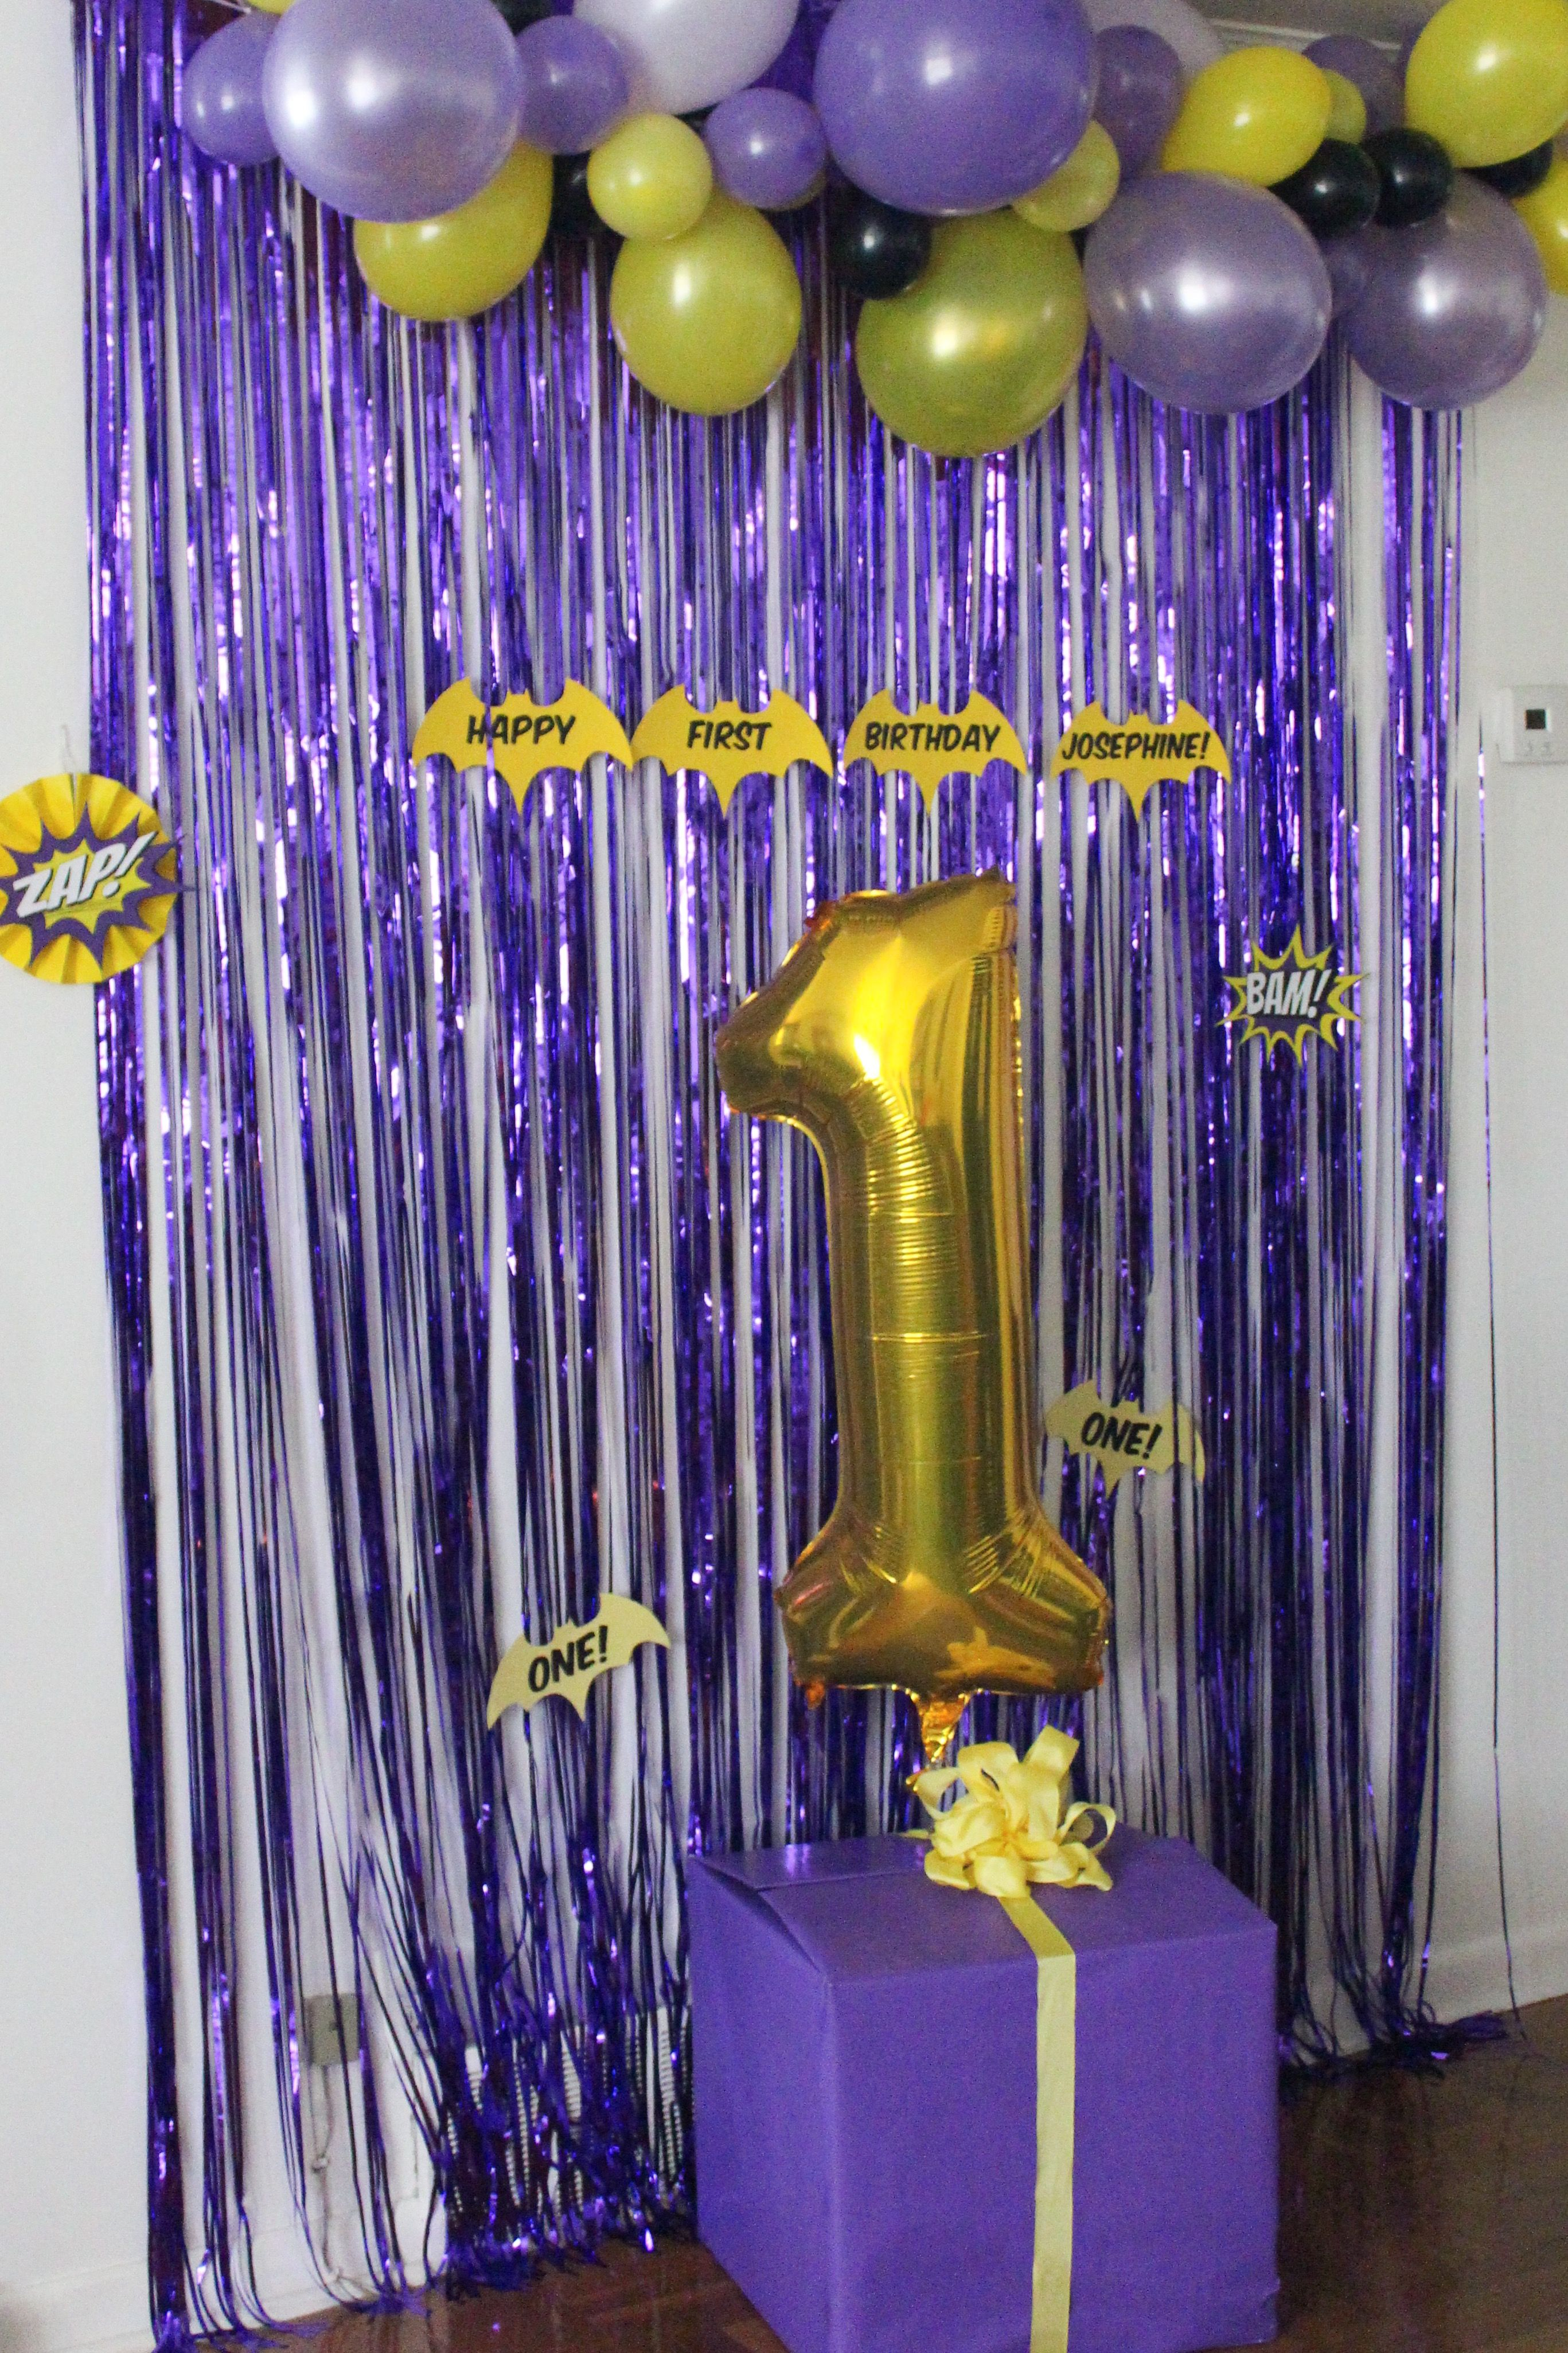 I used fringe curtains from Party City, a balloon strip